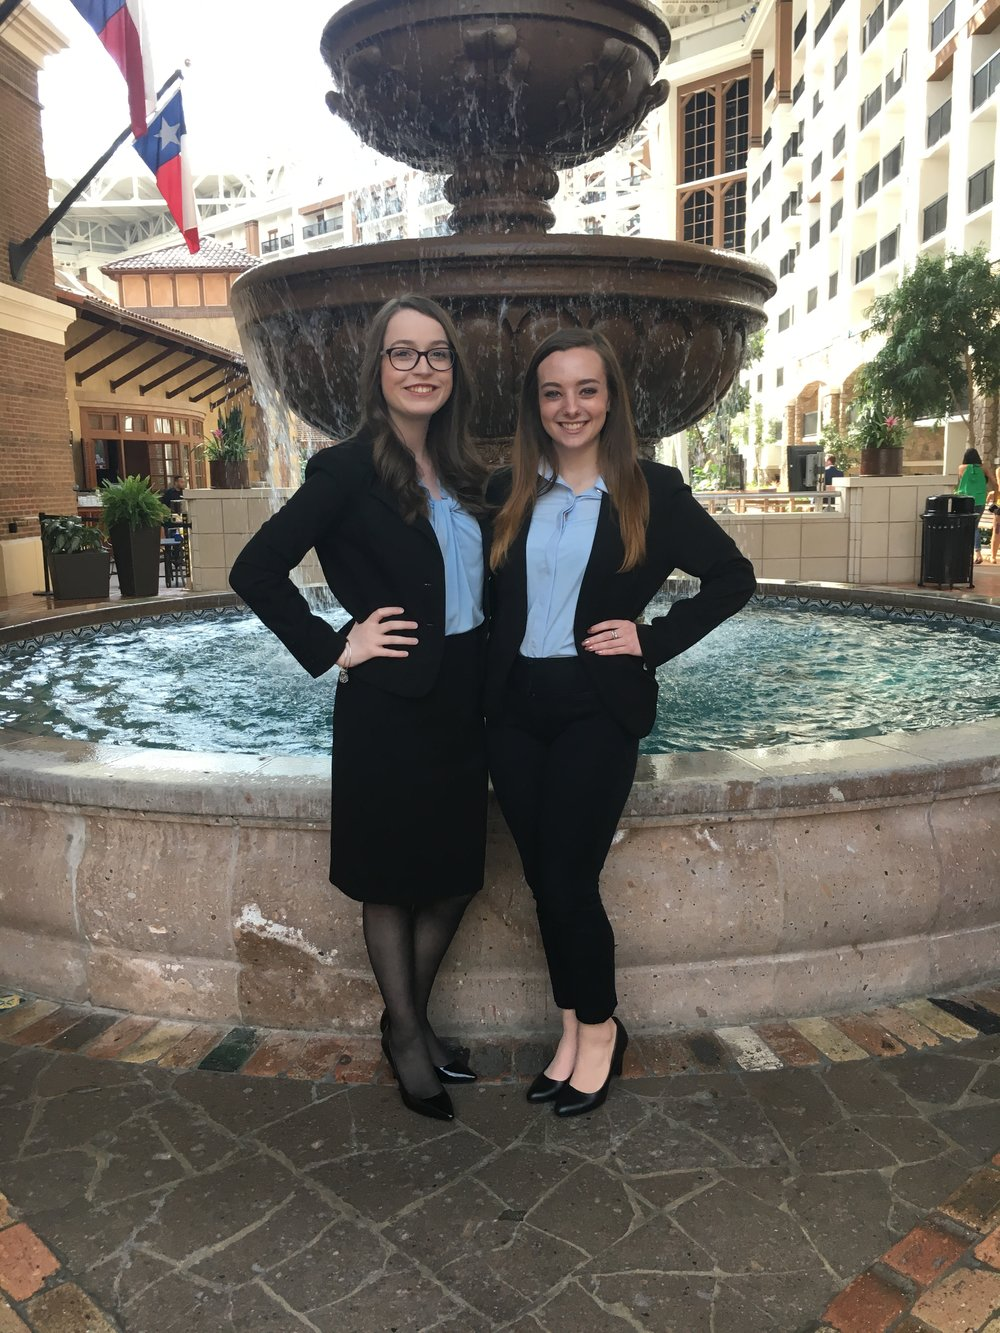 2018-2019 National Postsecondary President Skylar McArthur (right) - 2018 NLC - with Campaign Manager Emma Herron